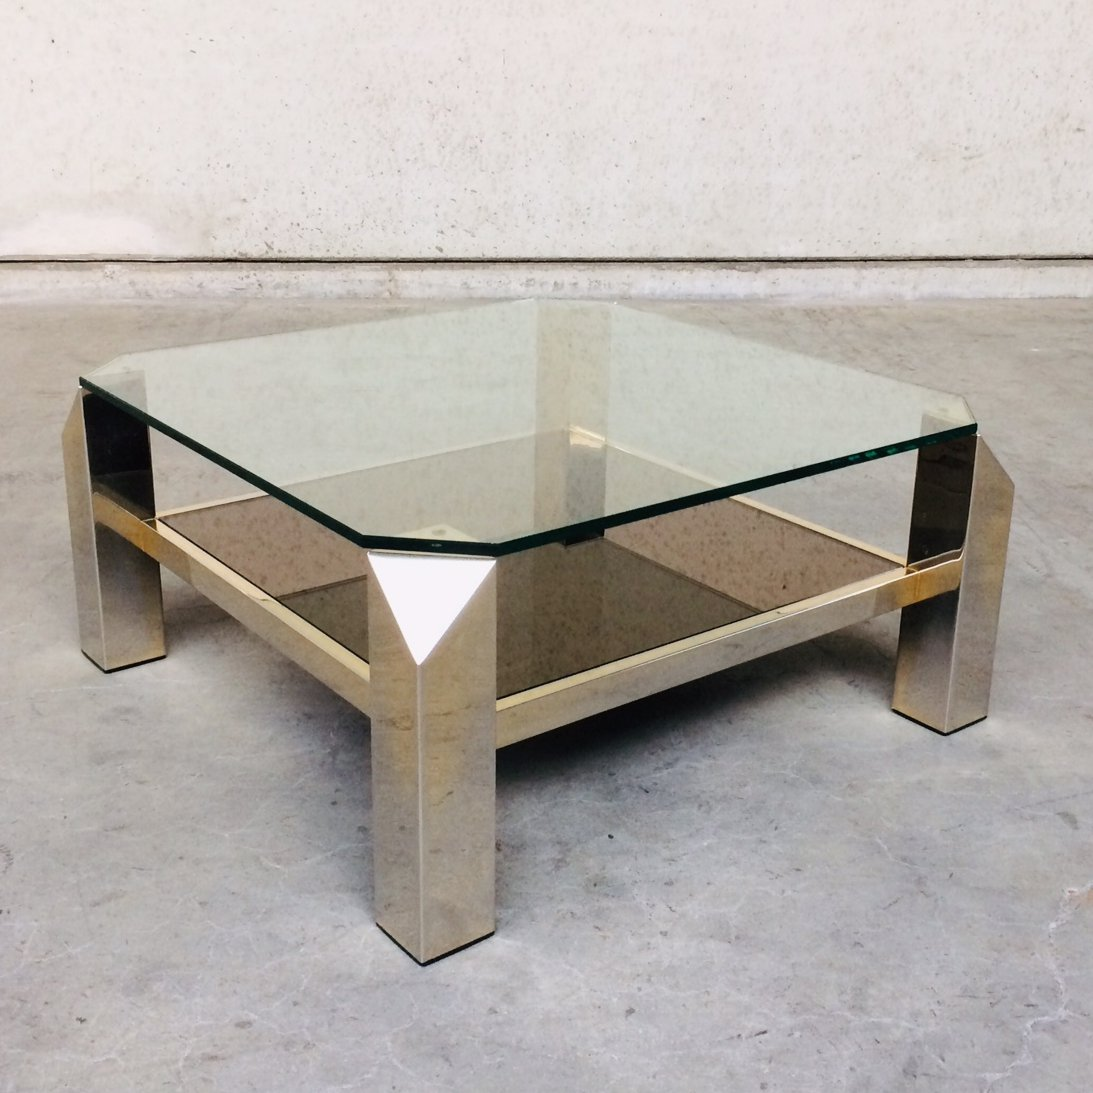 - Midcentury Modern Square Brass & Glass Coffee Table By Belgochrom